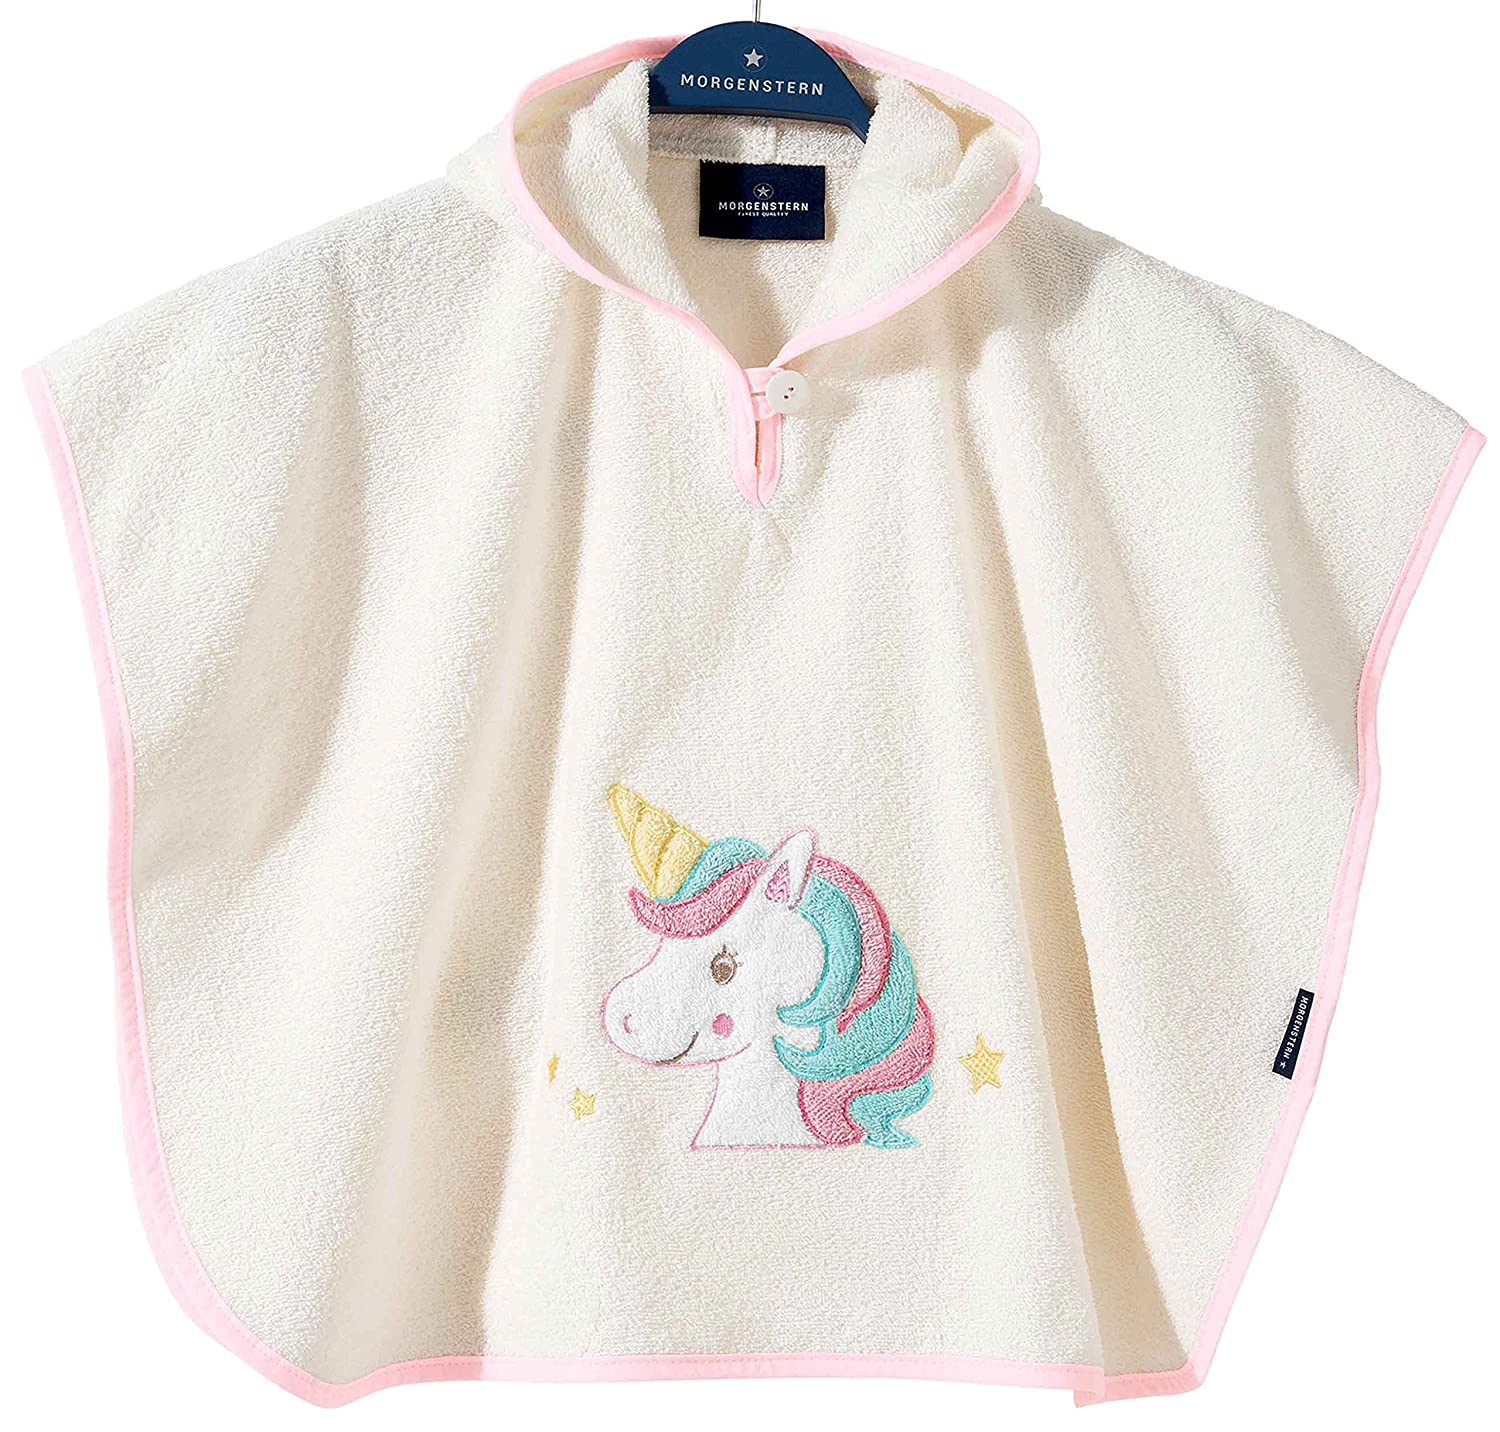 Morgenstern High Quality Childrens Hooded Poncho for Baby ,Toddler, Kids, Bath Beach Towel 1 - 3 yrs. Colour Beige, Unicorn Embroidery 0-0909/02